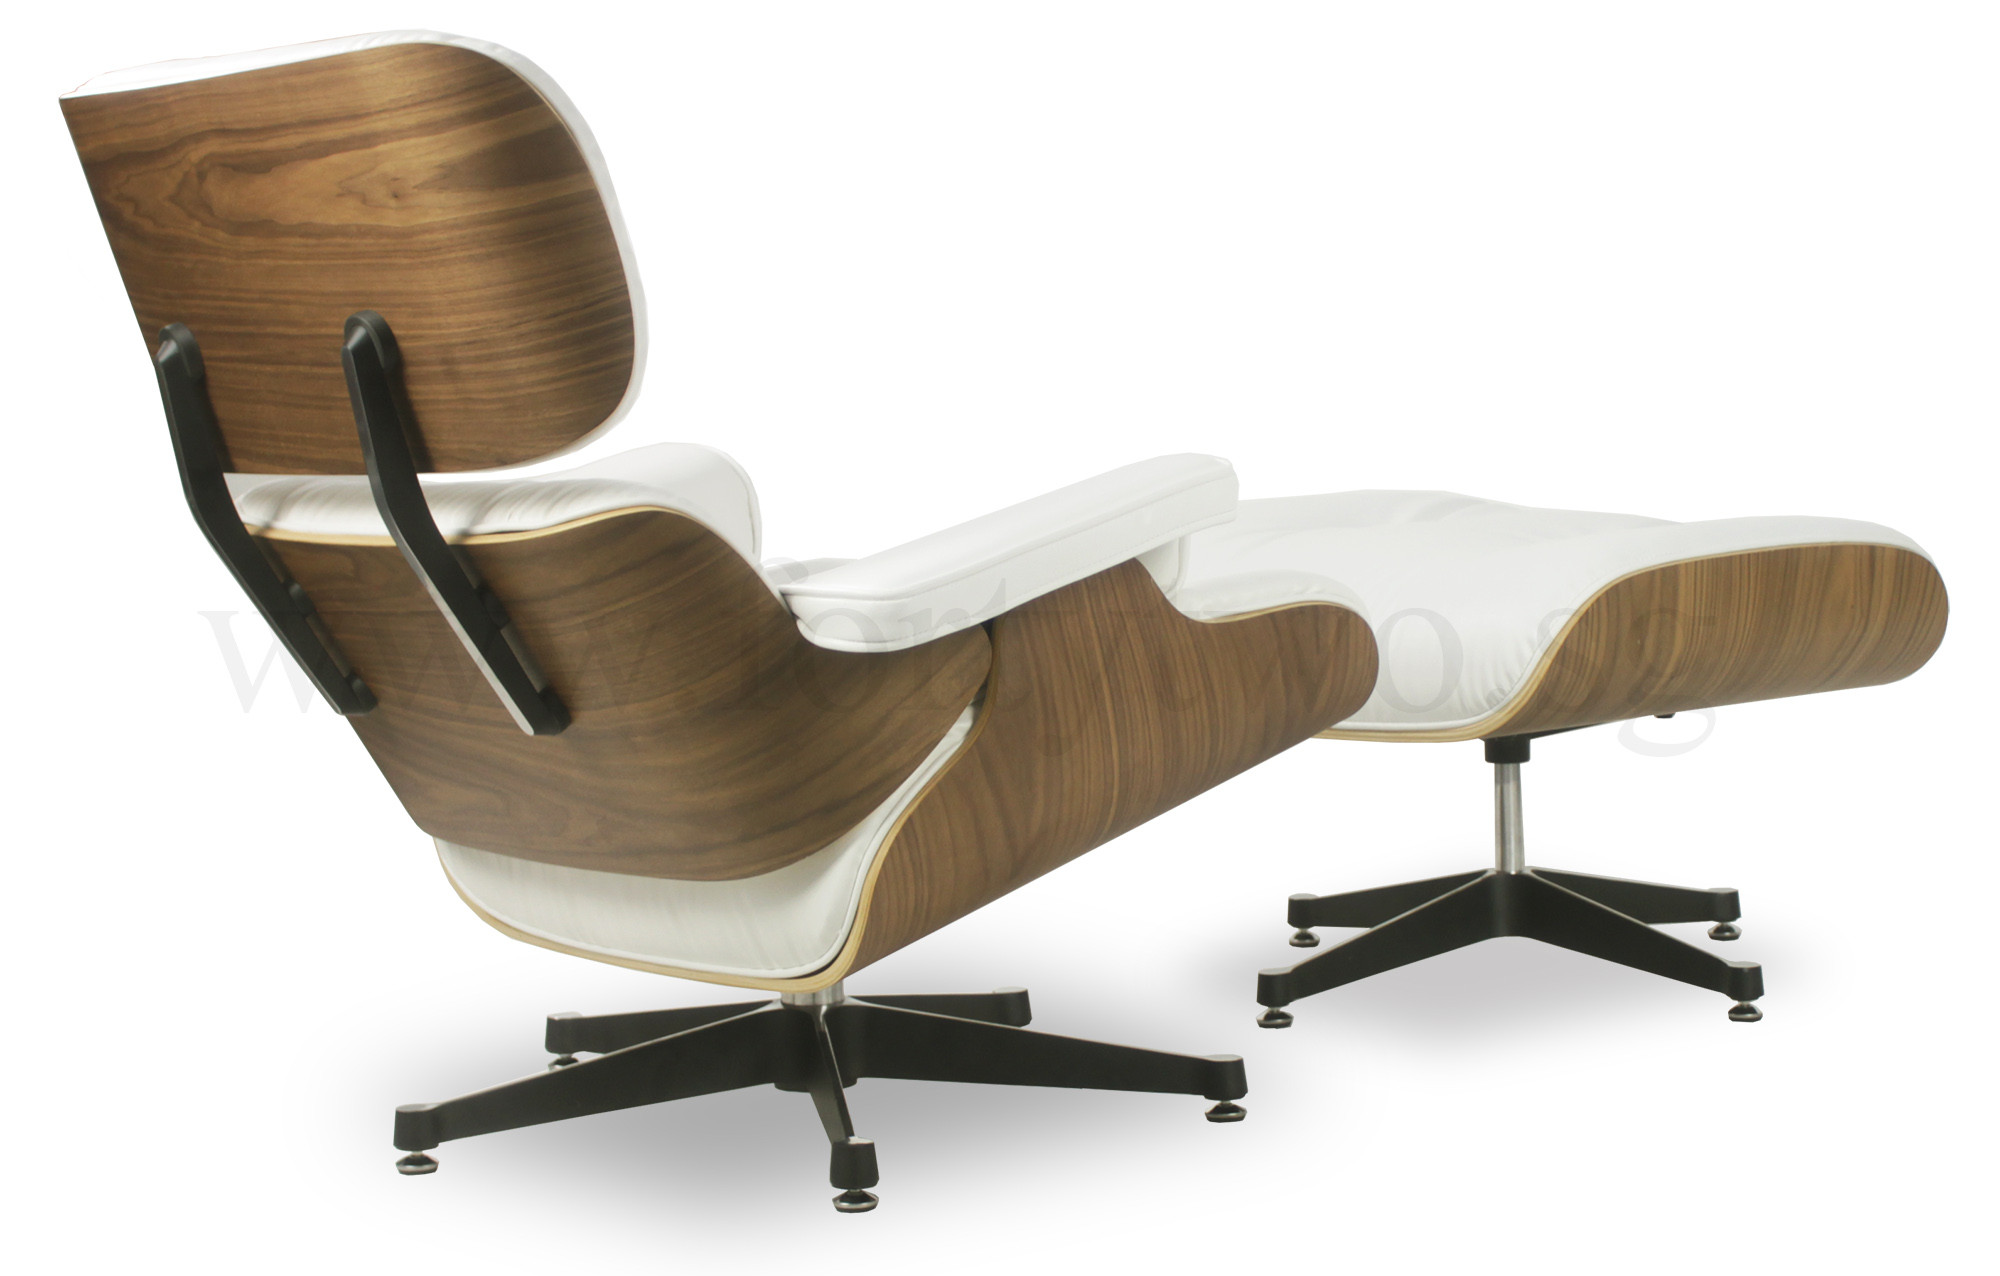 Fake Eames Chair Charming And Stylish Eames Chair Replica Eames Aluminum Group Management Chair